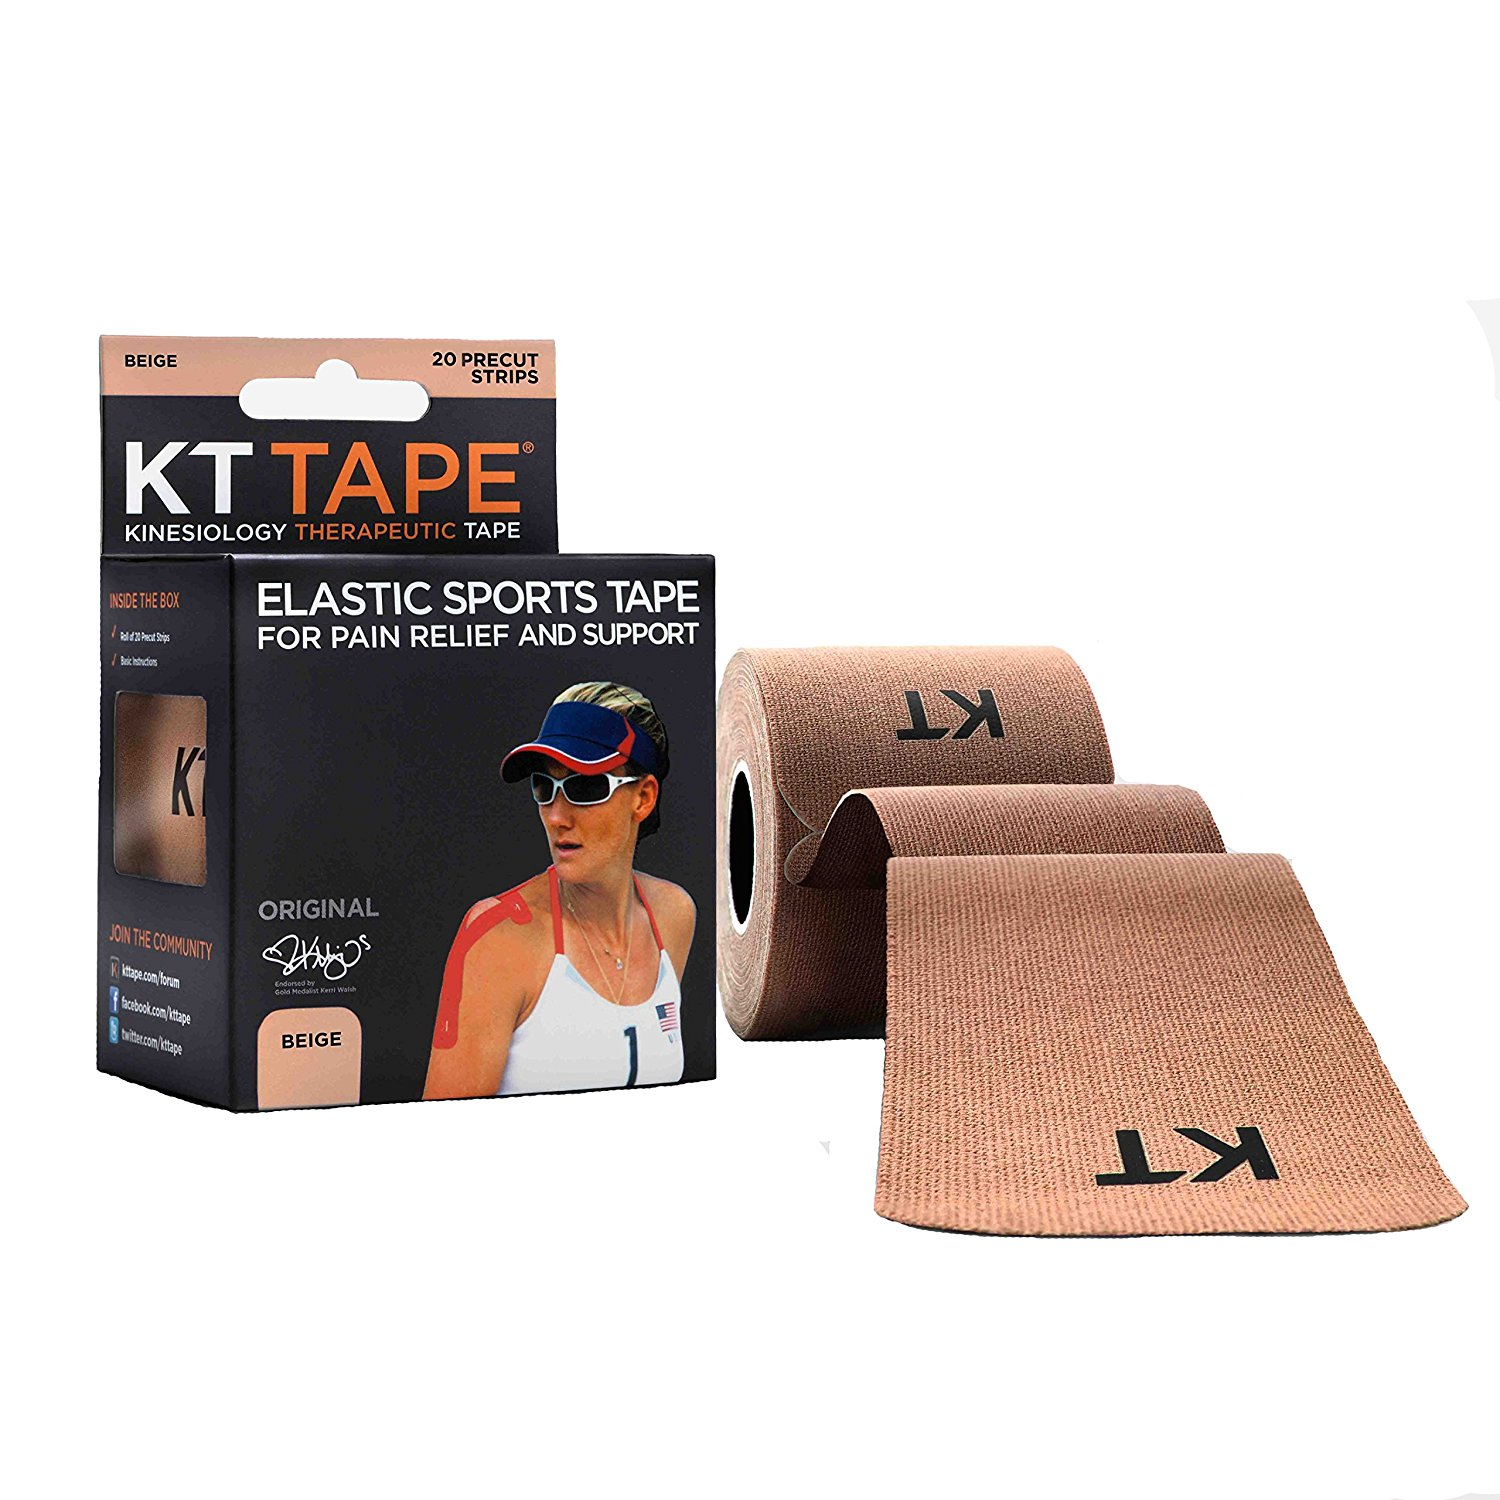 Original Cotton Elastic Kinesiology Therapeutic Sports Tape, 20 Precut 10 Inch Strips, Breathable, Free Videos, Pro & Olympic Choice, Beige, FOR SERIOUS.., By KT Tape